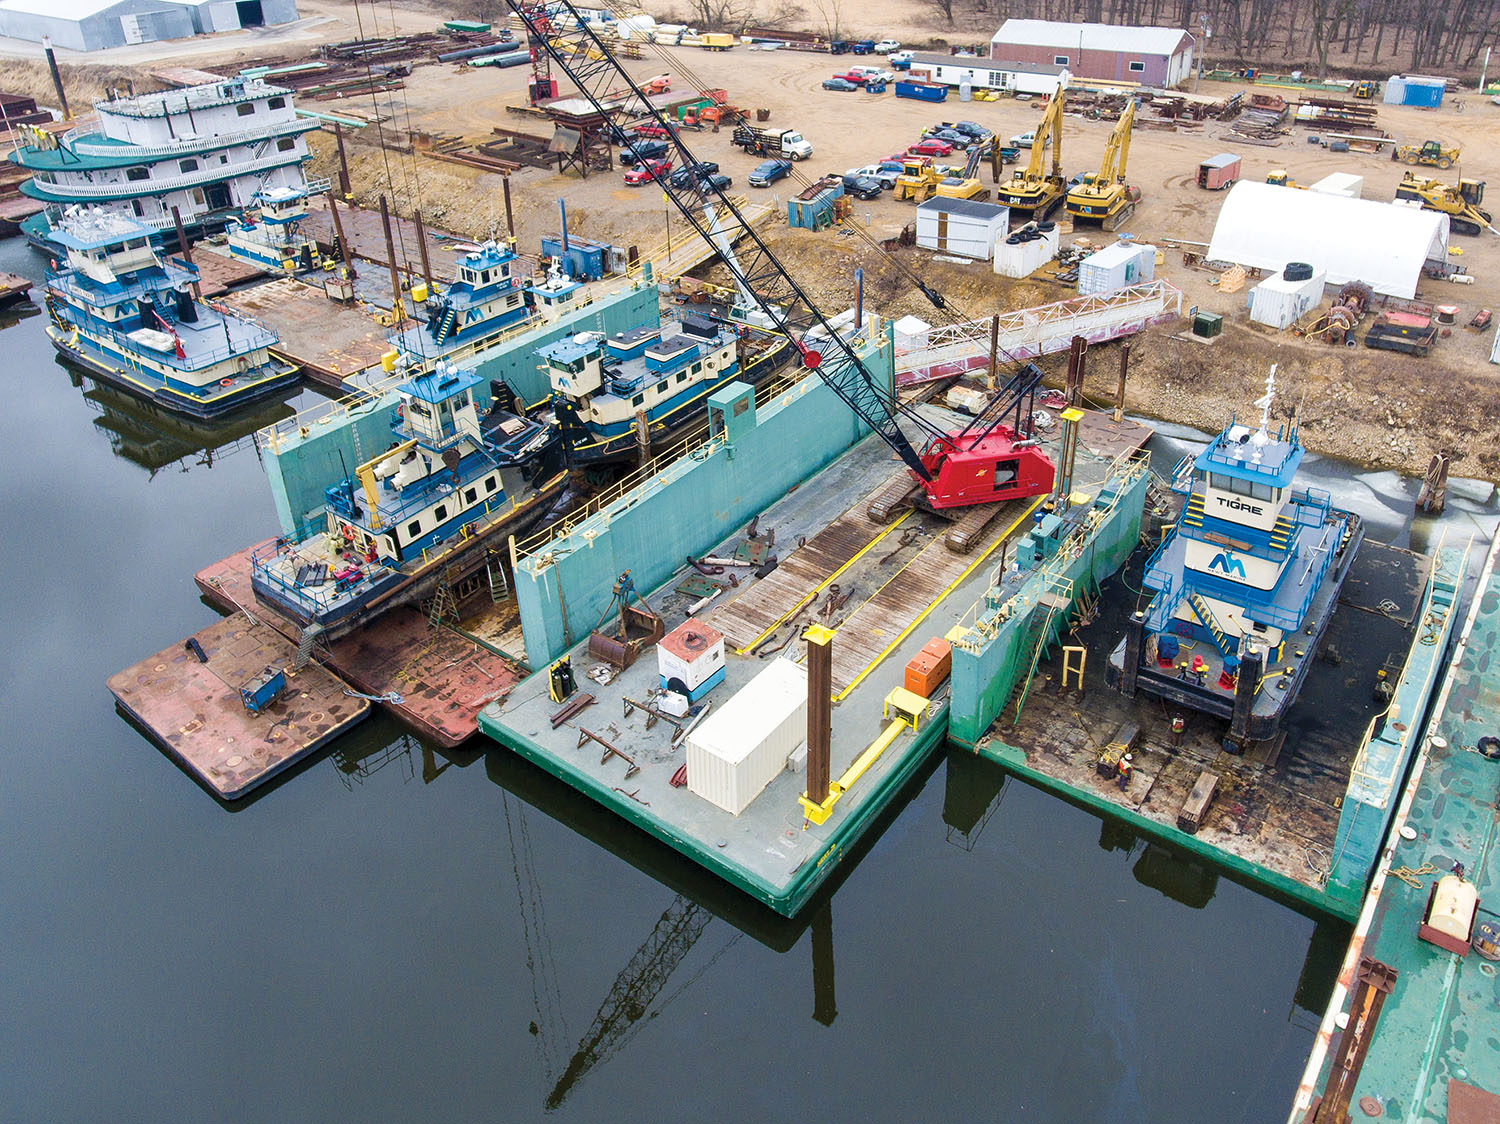 Aerial view of shipyard activities at Newt Marine Service in Dubuque, Iowa. (Photo by Quintin Pfeiffer)